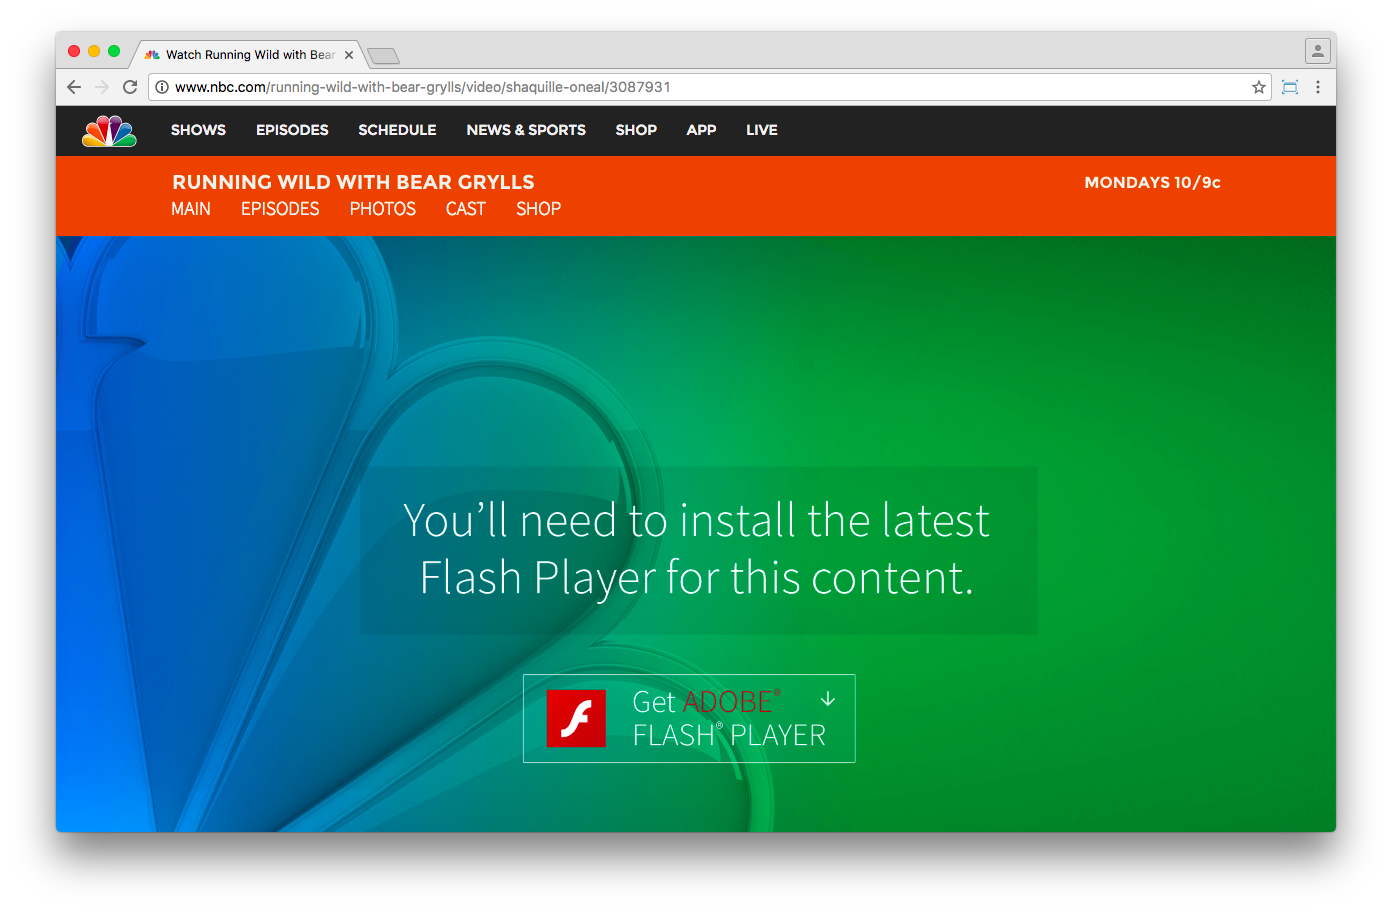 NBC is very adamant about needing Flash Player for their video content